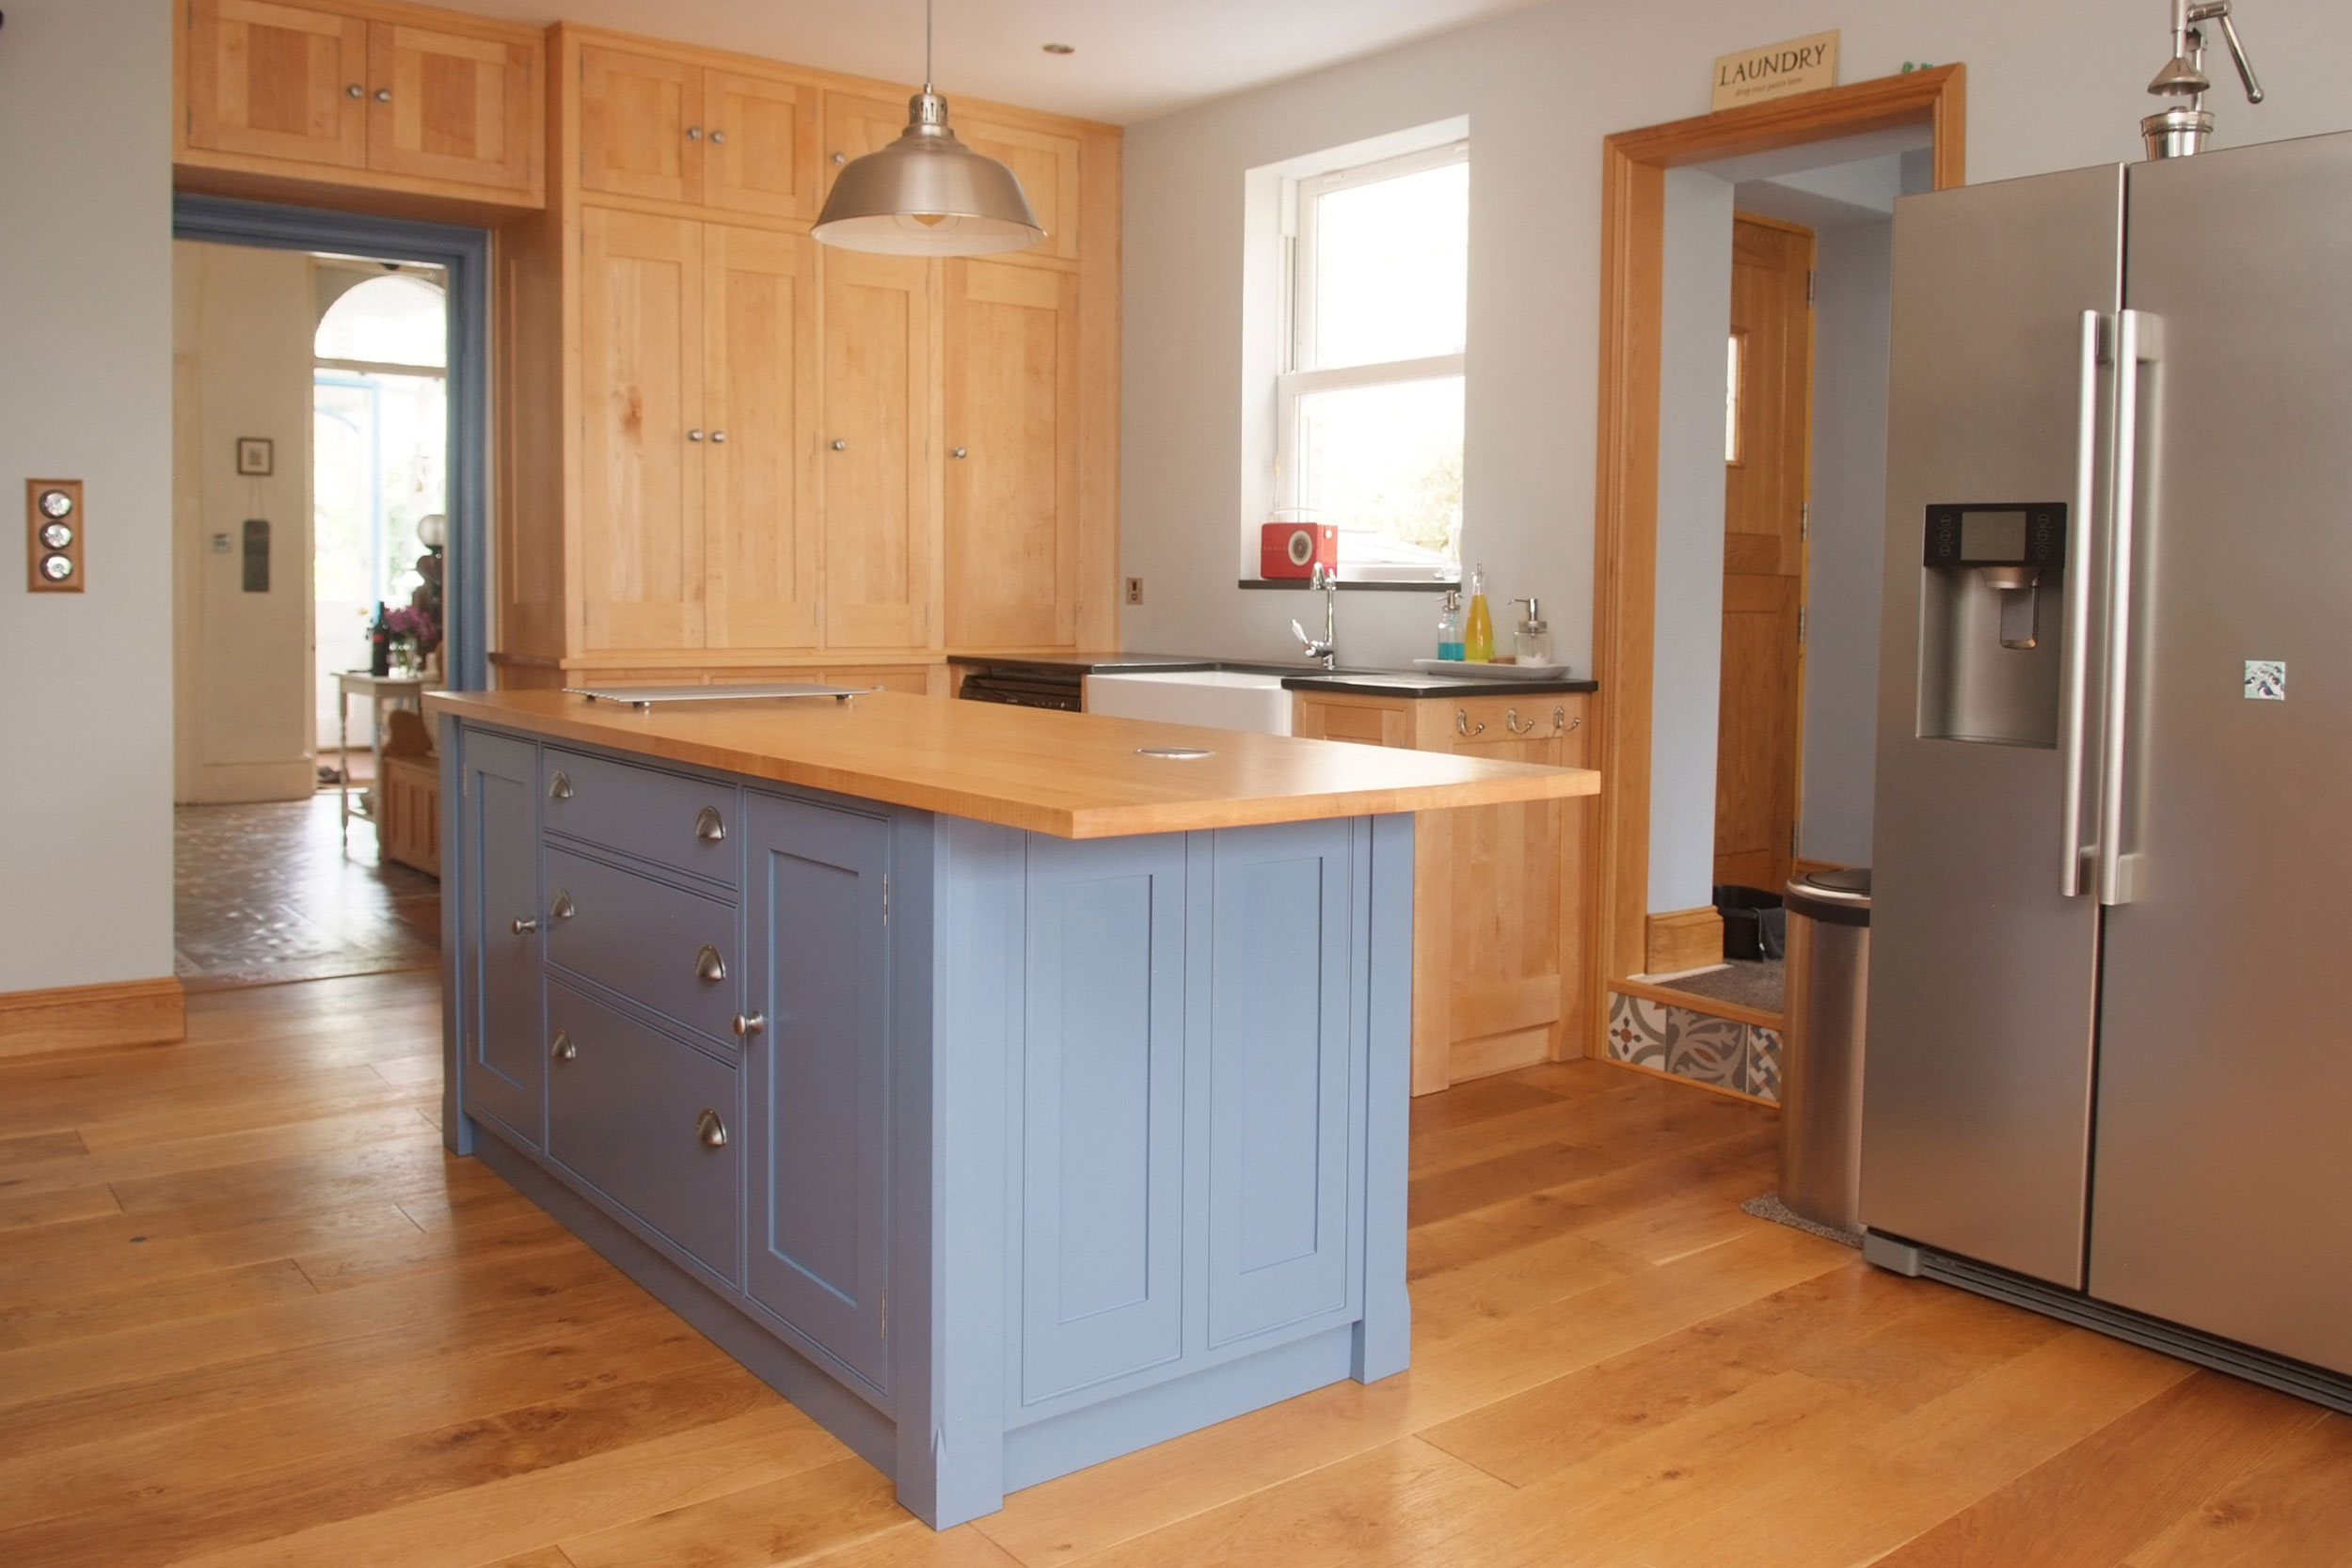 This kitchen is built in maple and has a central island with painted units and a maple worktop